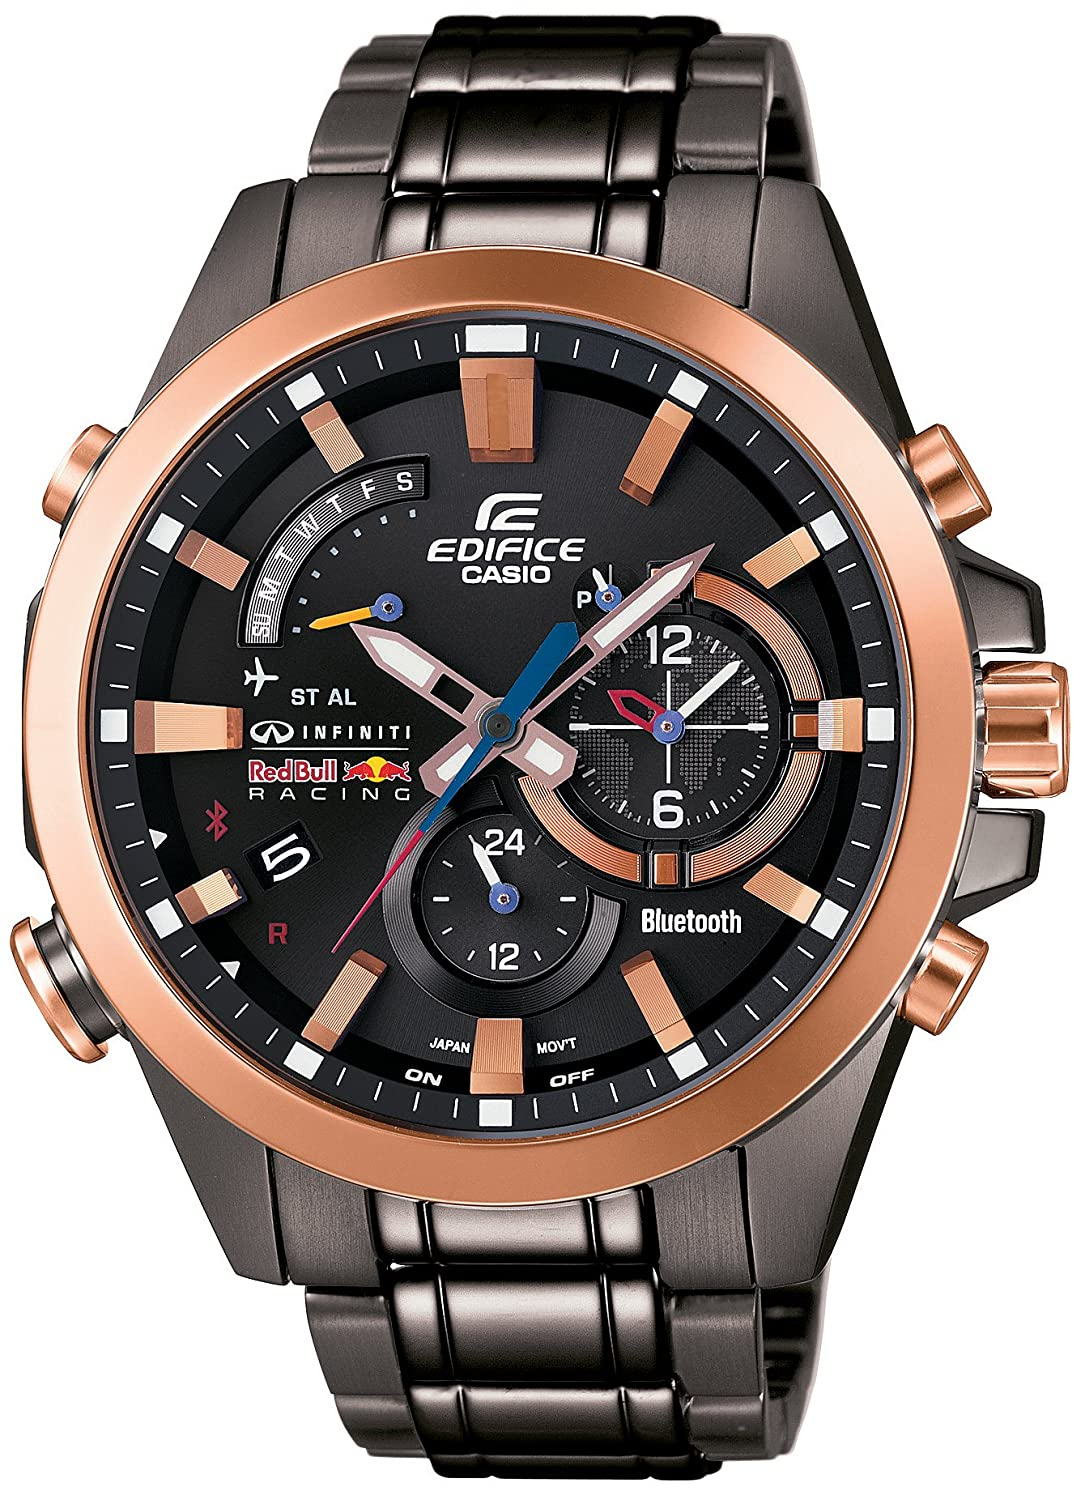 Casio Edifice Infiniti Red Bull Racing EQB-510RBM-1AJR - Reloj inteligente con Bluetooth: Amazon.es: Relojes